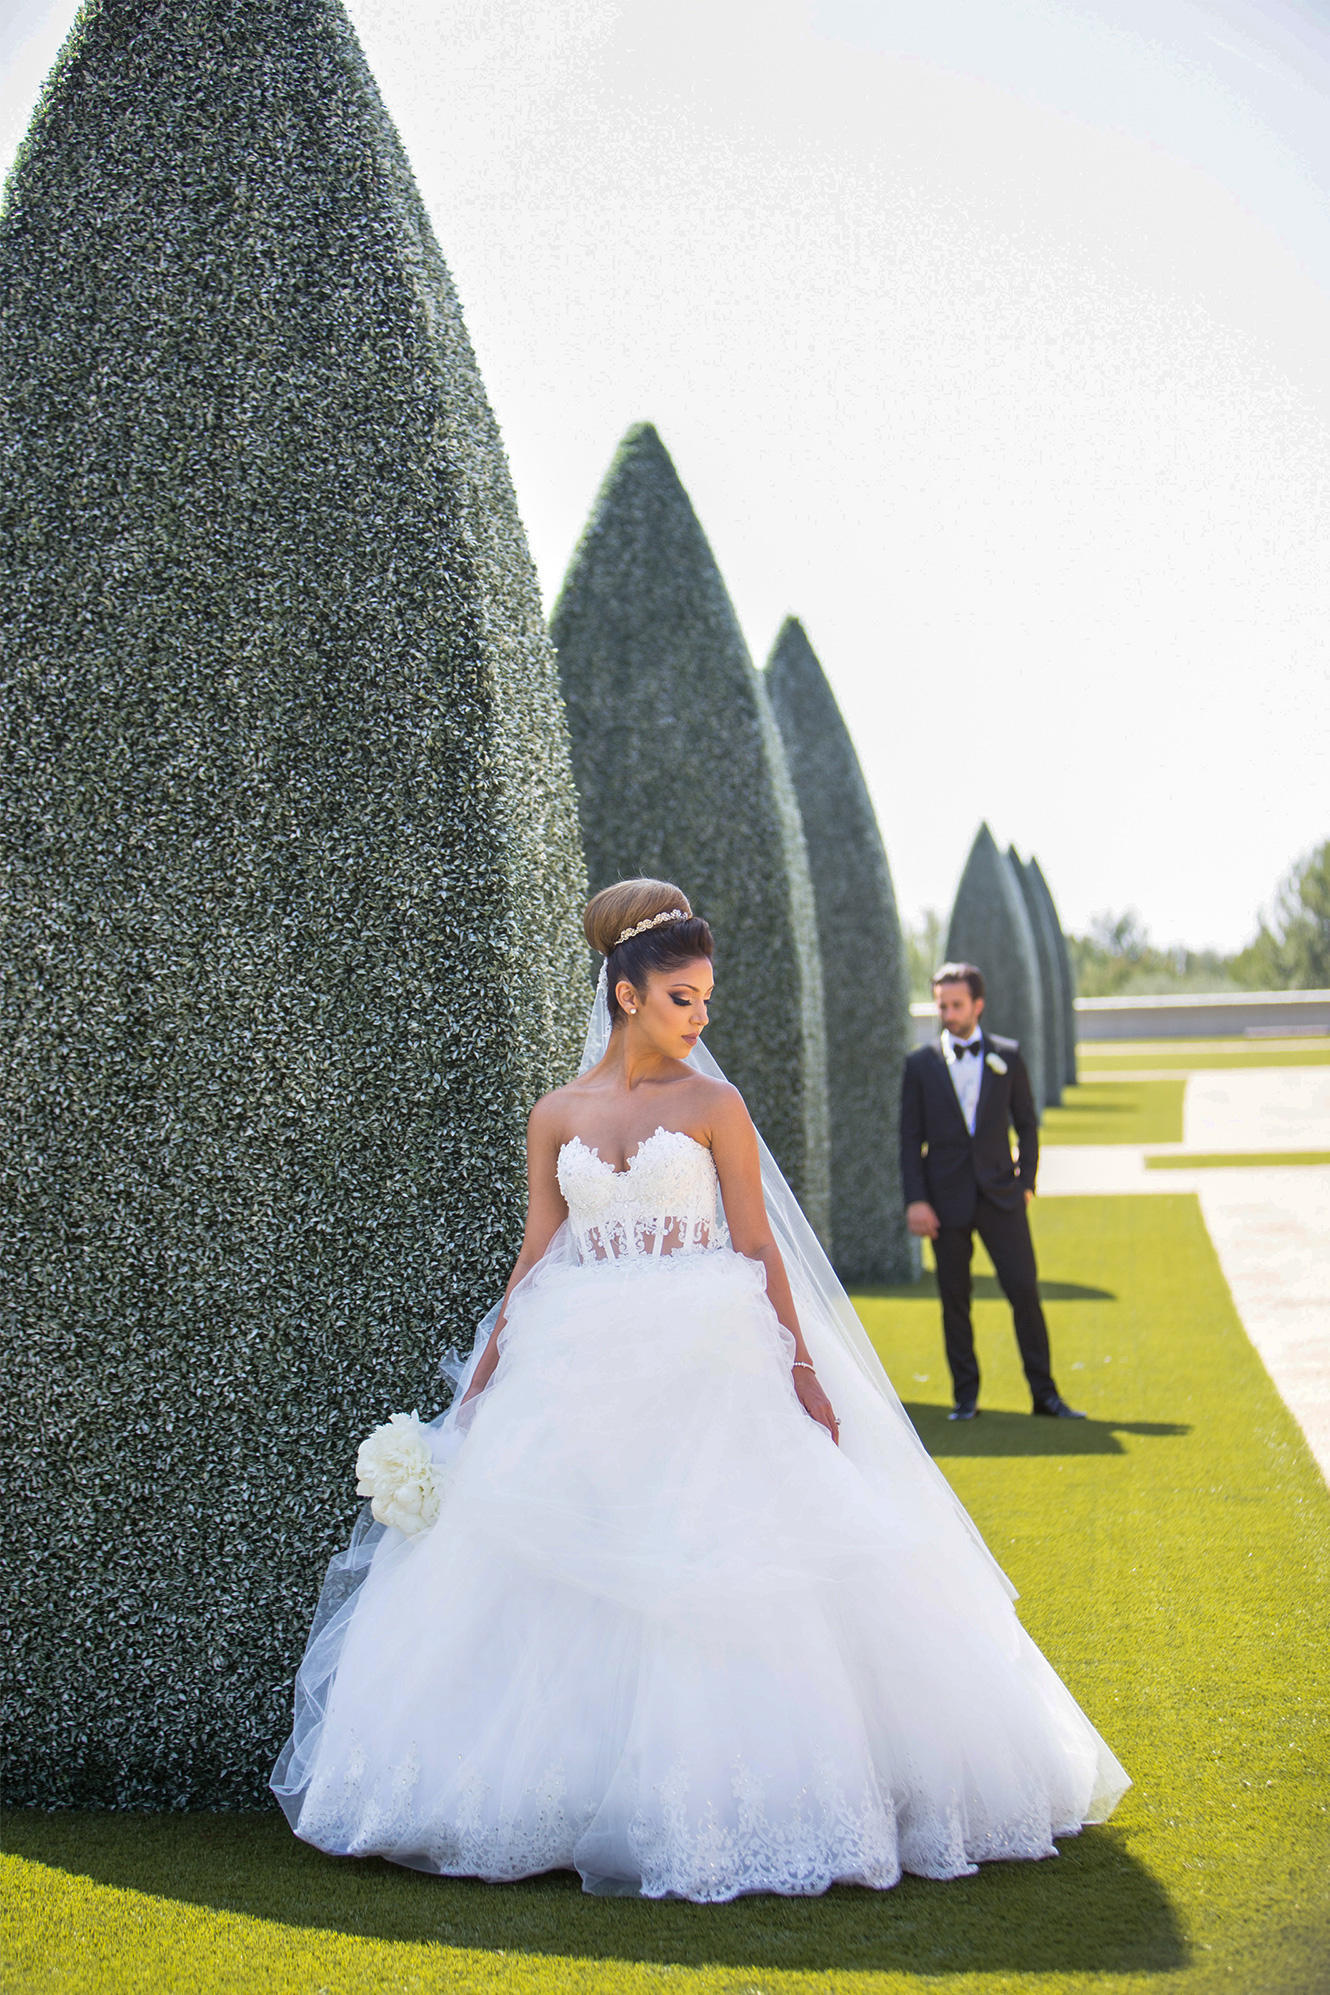 Persias big day say yes to the dress tlc 11 syttd the big day 303 ombrellifo Images